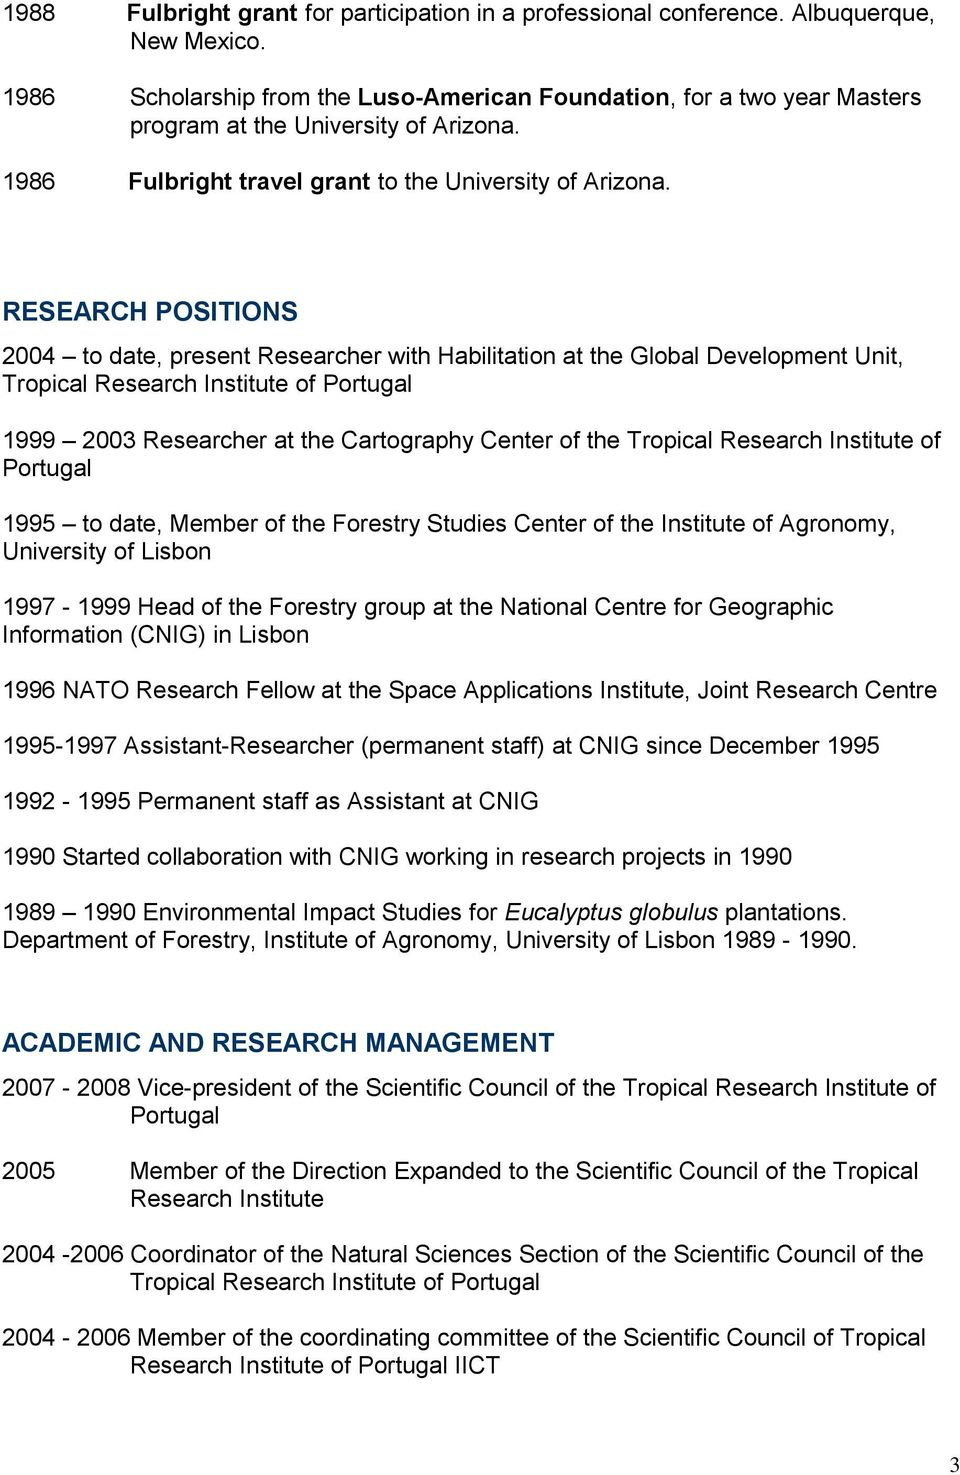 RESEARCH POSITIONS 2004 to date, present Researcher with Habilitation at the Global Development Unit, Tropical Research Institute of Portugal 1999 2003 Researcher at the Cartography Center of the